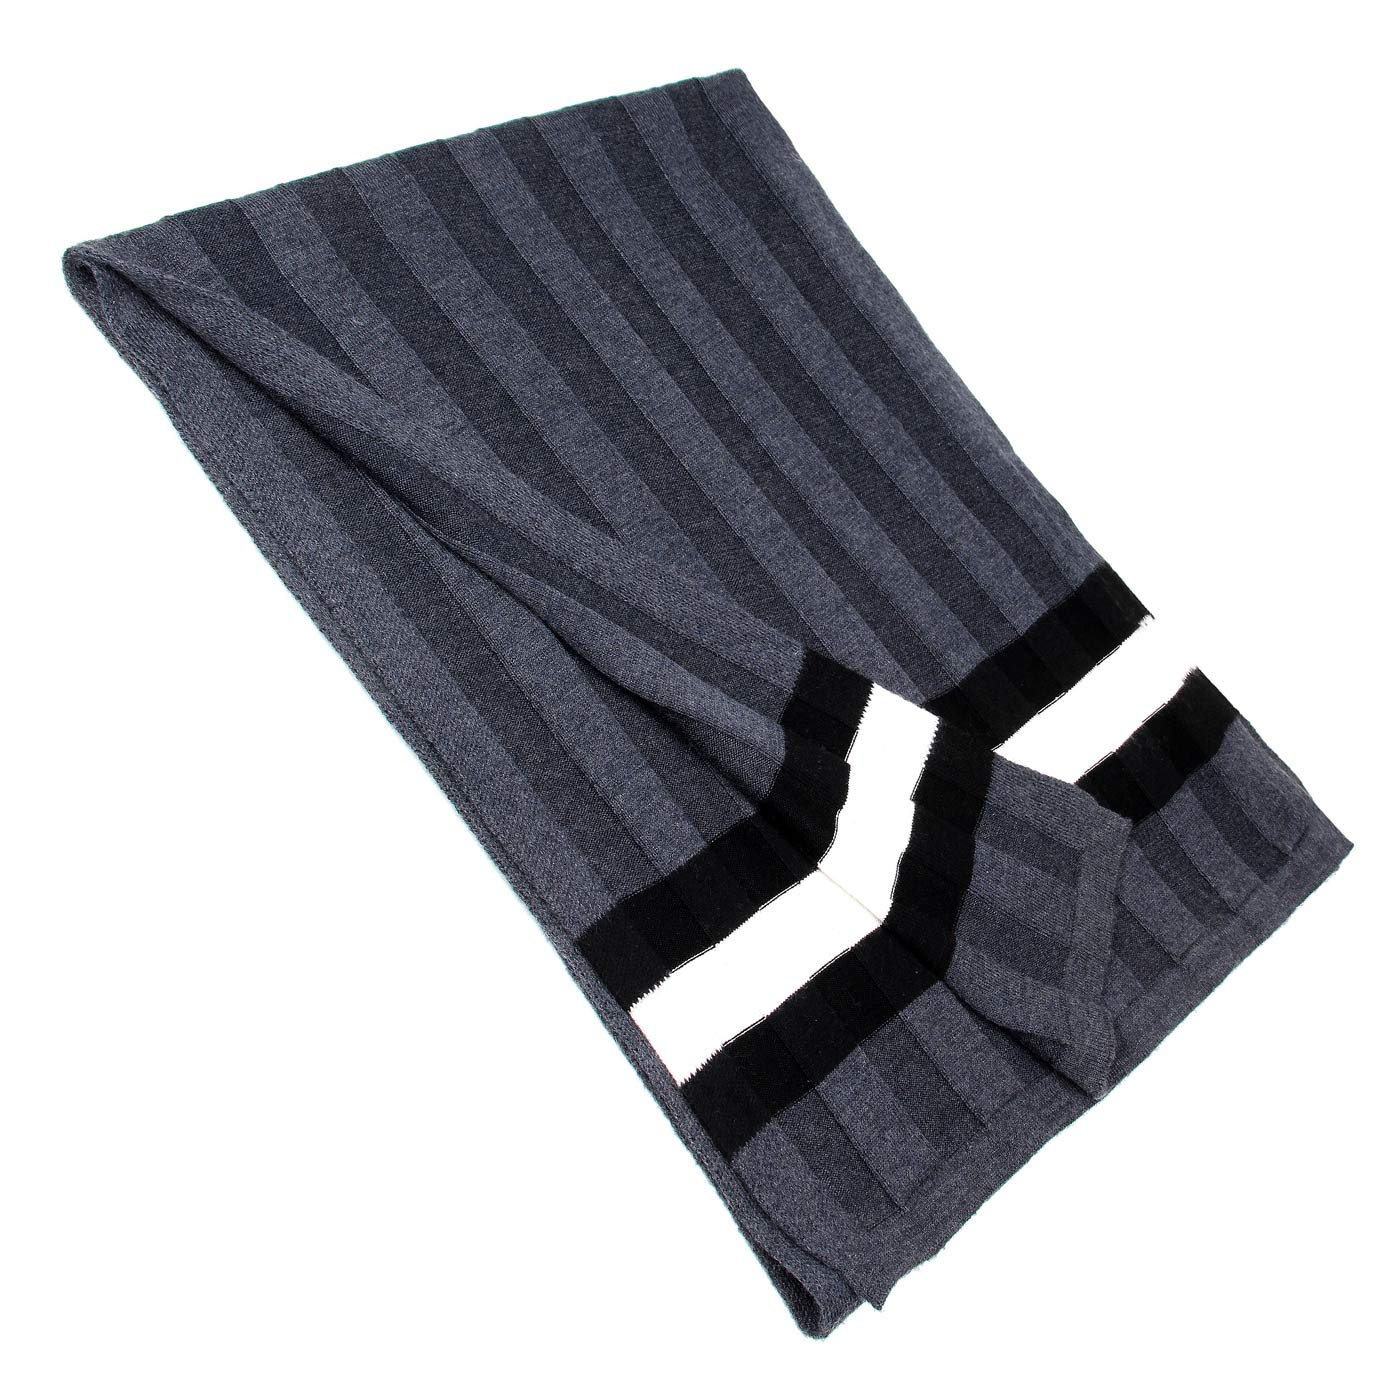 Men Plain Thermal Scarf Knitted Striped Winter Scarves One Size Leisure Business Men Warm Neckerchief Gray by Panegy (Image #7)